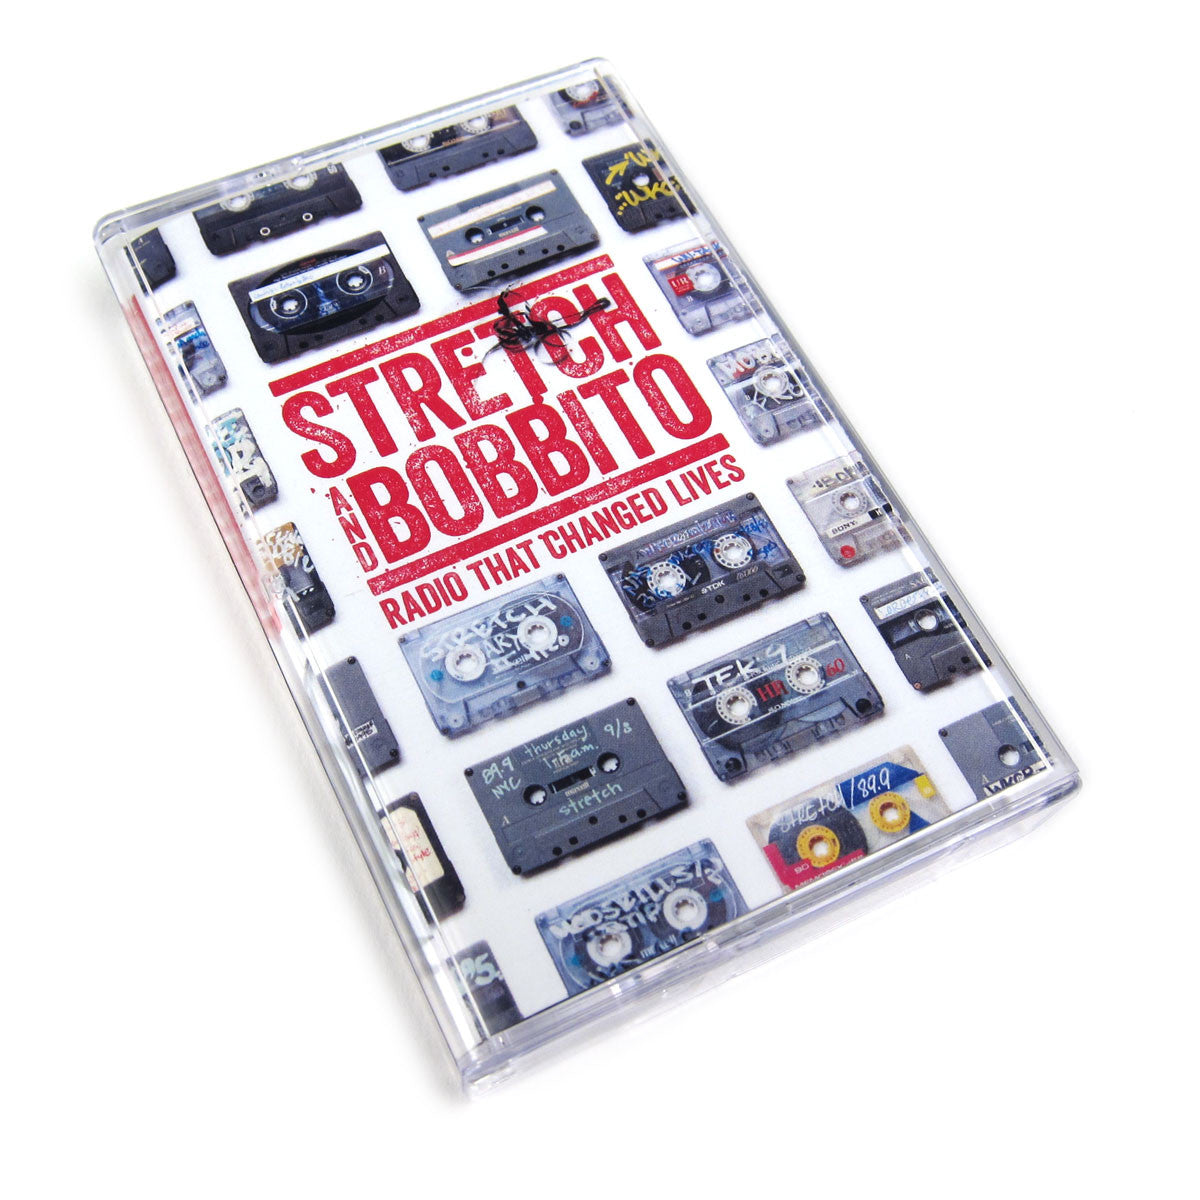 Stretch And Bobbito: Radio That Changed Lives 03/02/95 Cassette